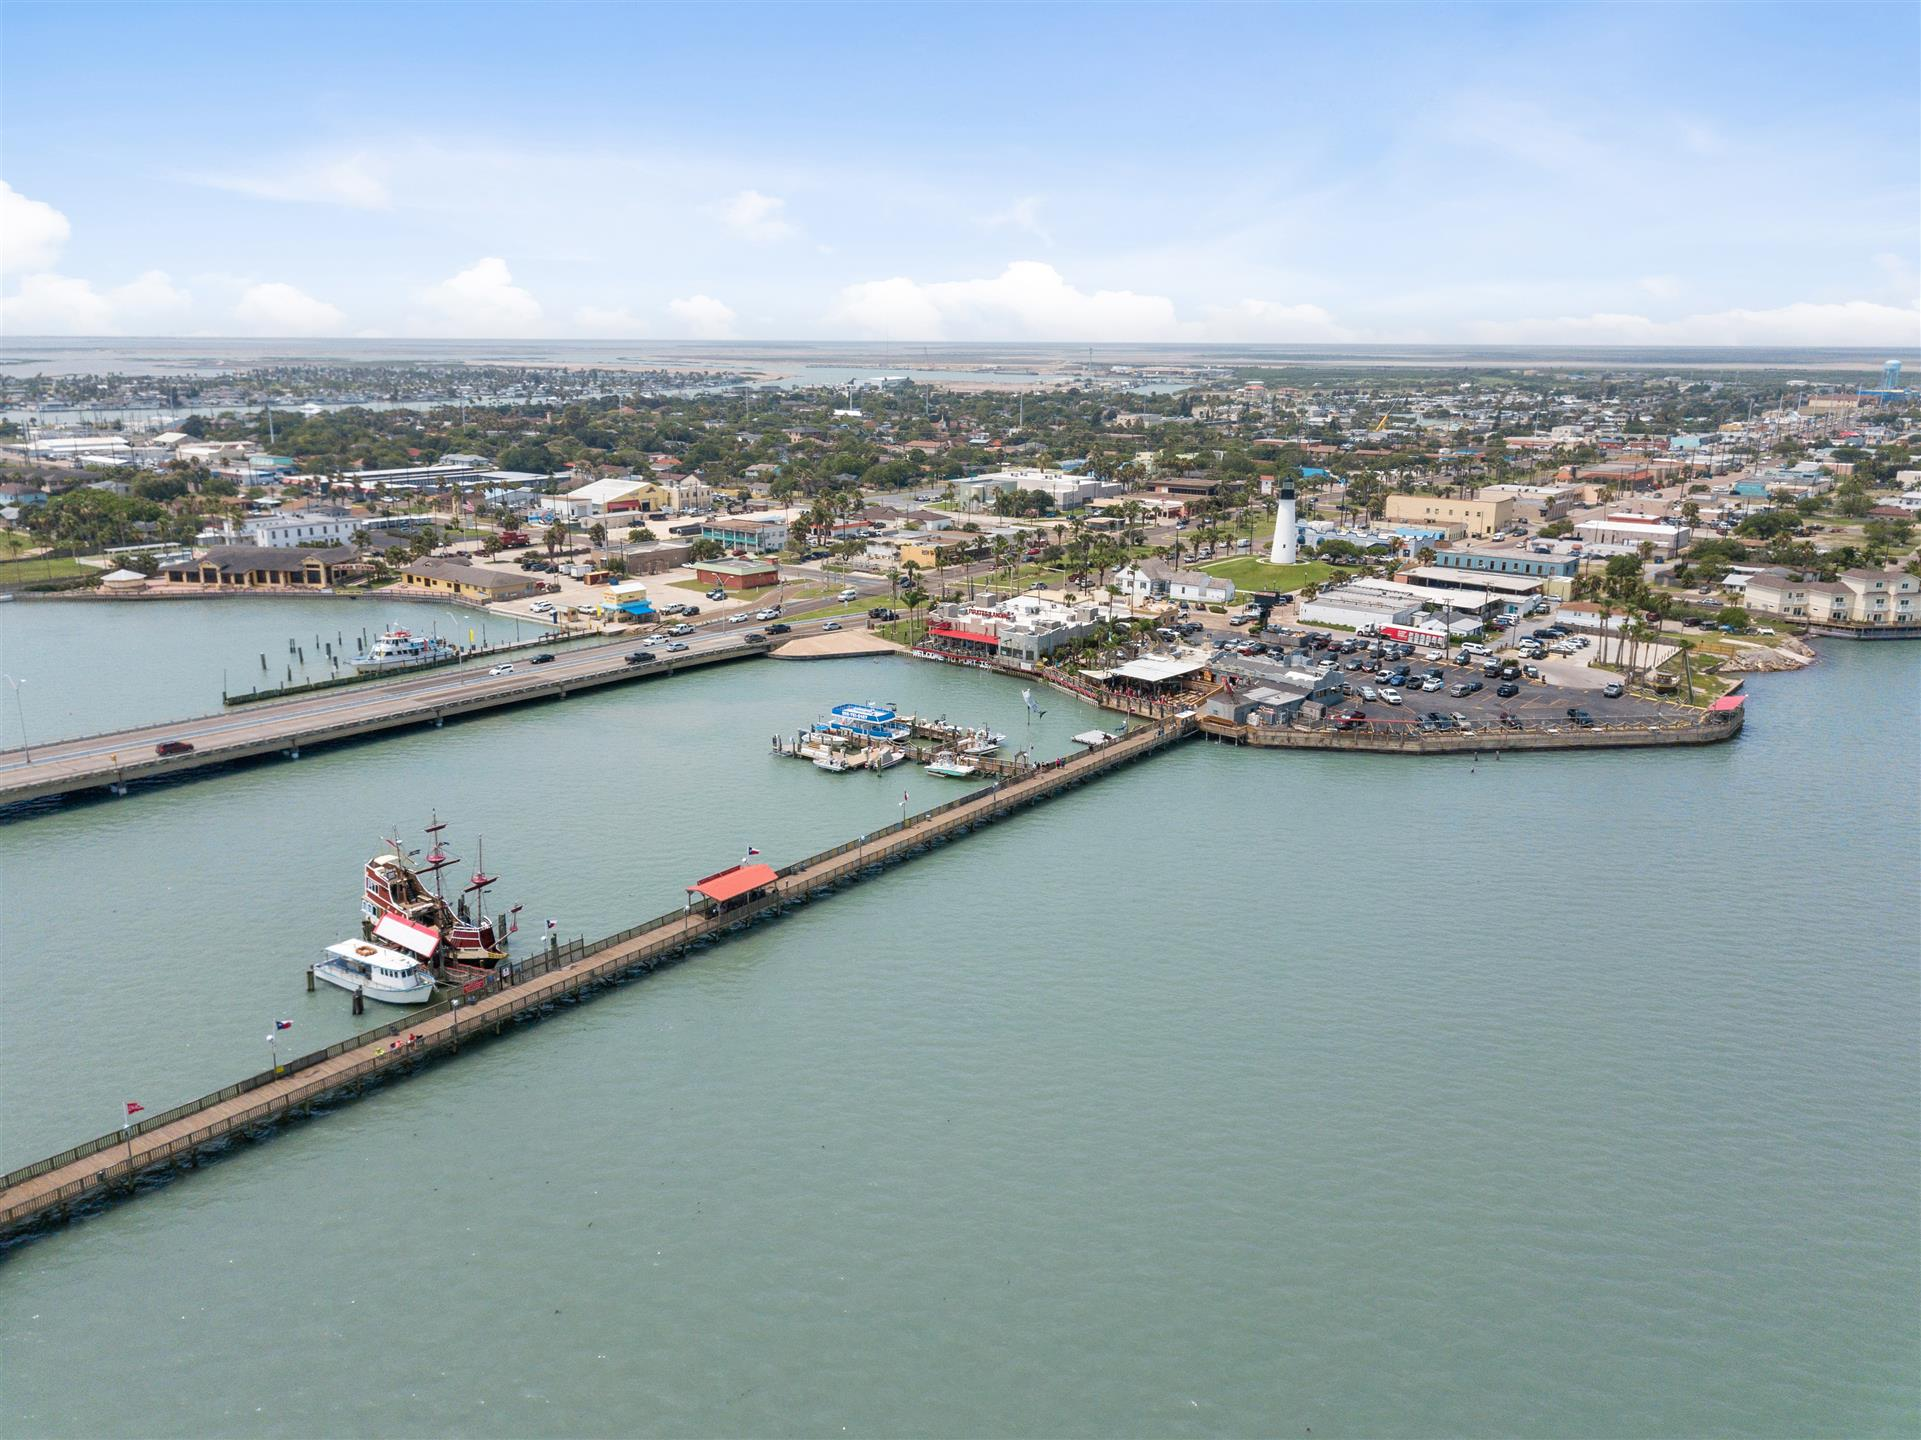 panoramic aerial view of Pirate's Fishing Pier and the Causeway